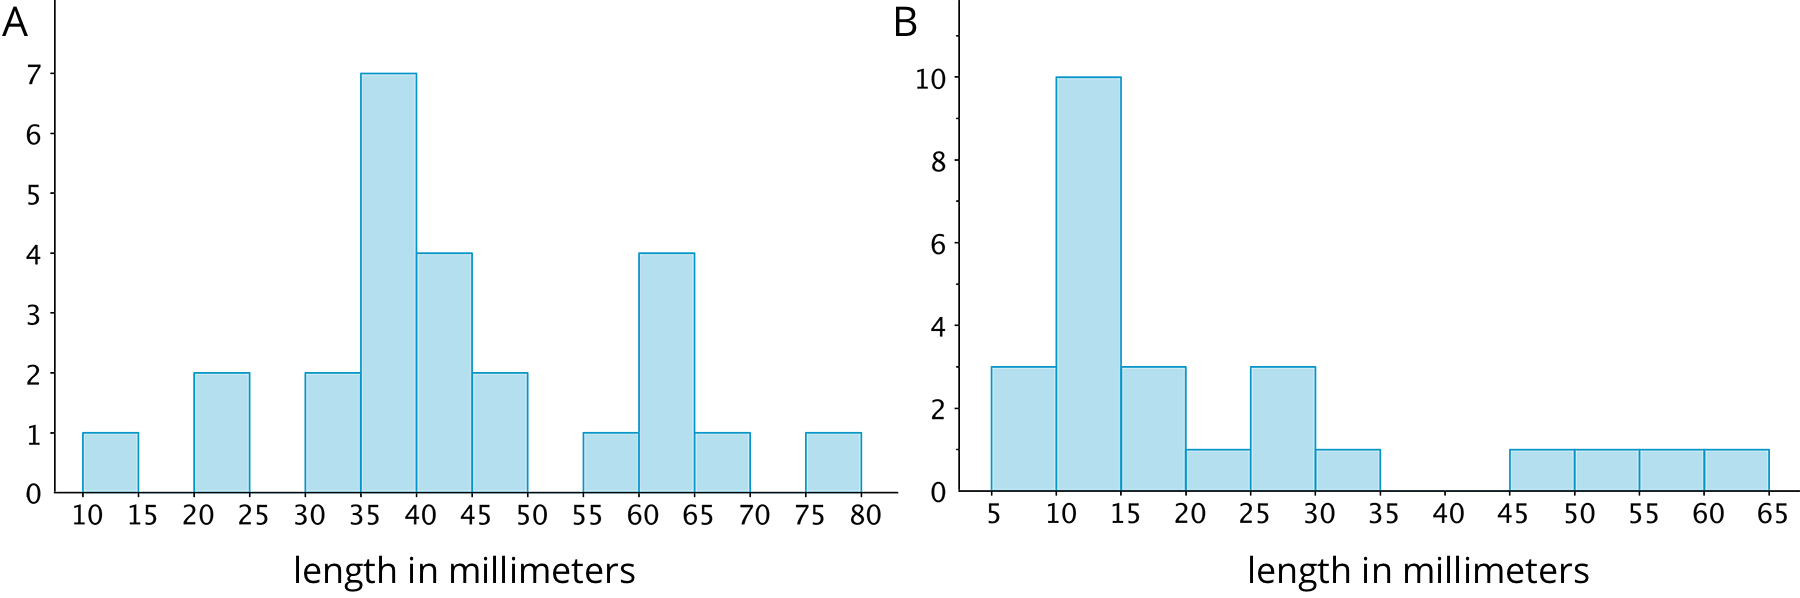 "Two histograms for ""length in millimeters"" labeled ""A"" and ""B."" Histogram ""A:"" horizontal axis is labeled ""length in millimeters"" with the numbers 10 through 80, in increments of 5, indicated.  The vertical axis has the numbers 0 through 7 indicated.  The data are: 10 up to 15 millimeters, 1; 15 up to 20 millimeters, 0; 20 up to 25 millimeters, 2; 25 up to 30 millimeters, 0; 30 up to 35 millimeters, 2; 35 up to 40 millimeters, 7; 40 up to 45 millimeters, 4; 45 up to 50 millimeters, 2; 50 up to 55 millimeters, 0; 55 up to 60 millimeters, 1; 60 up to 65 millimeters, 4; 65 up to 70 millimeters, 1; 70 up to 75 millimeters, 0; 75 up to 80 millimeters, 1. Histogram ""B:"" horizontal axis is labeled ""length in millimeters,"" the numbers 5 through 65, in increments of 5, are indicated.  The vertical axis has the numbers 0 through 10 indicated, with tick marks midway between.  The data are:  5 up to 10 millimeters, 3; 10 up to 15 millimeters, 10; 15 up to 20 millimeters, 3; 20 up to 25 millimeters, 1; 25 up to 30 millimeters, 3; 30 up to 35 millimeters, 1; 35 up to 40 millimeters, 0; 40 up to 45 millimeters, 0; 45 up to 50 millimeters, 1; 50 up to 55 millimeters, 1; 55 up to 60 millimeters, 1; 60 up to 65 millimeters, 1."